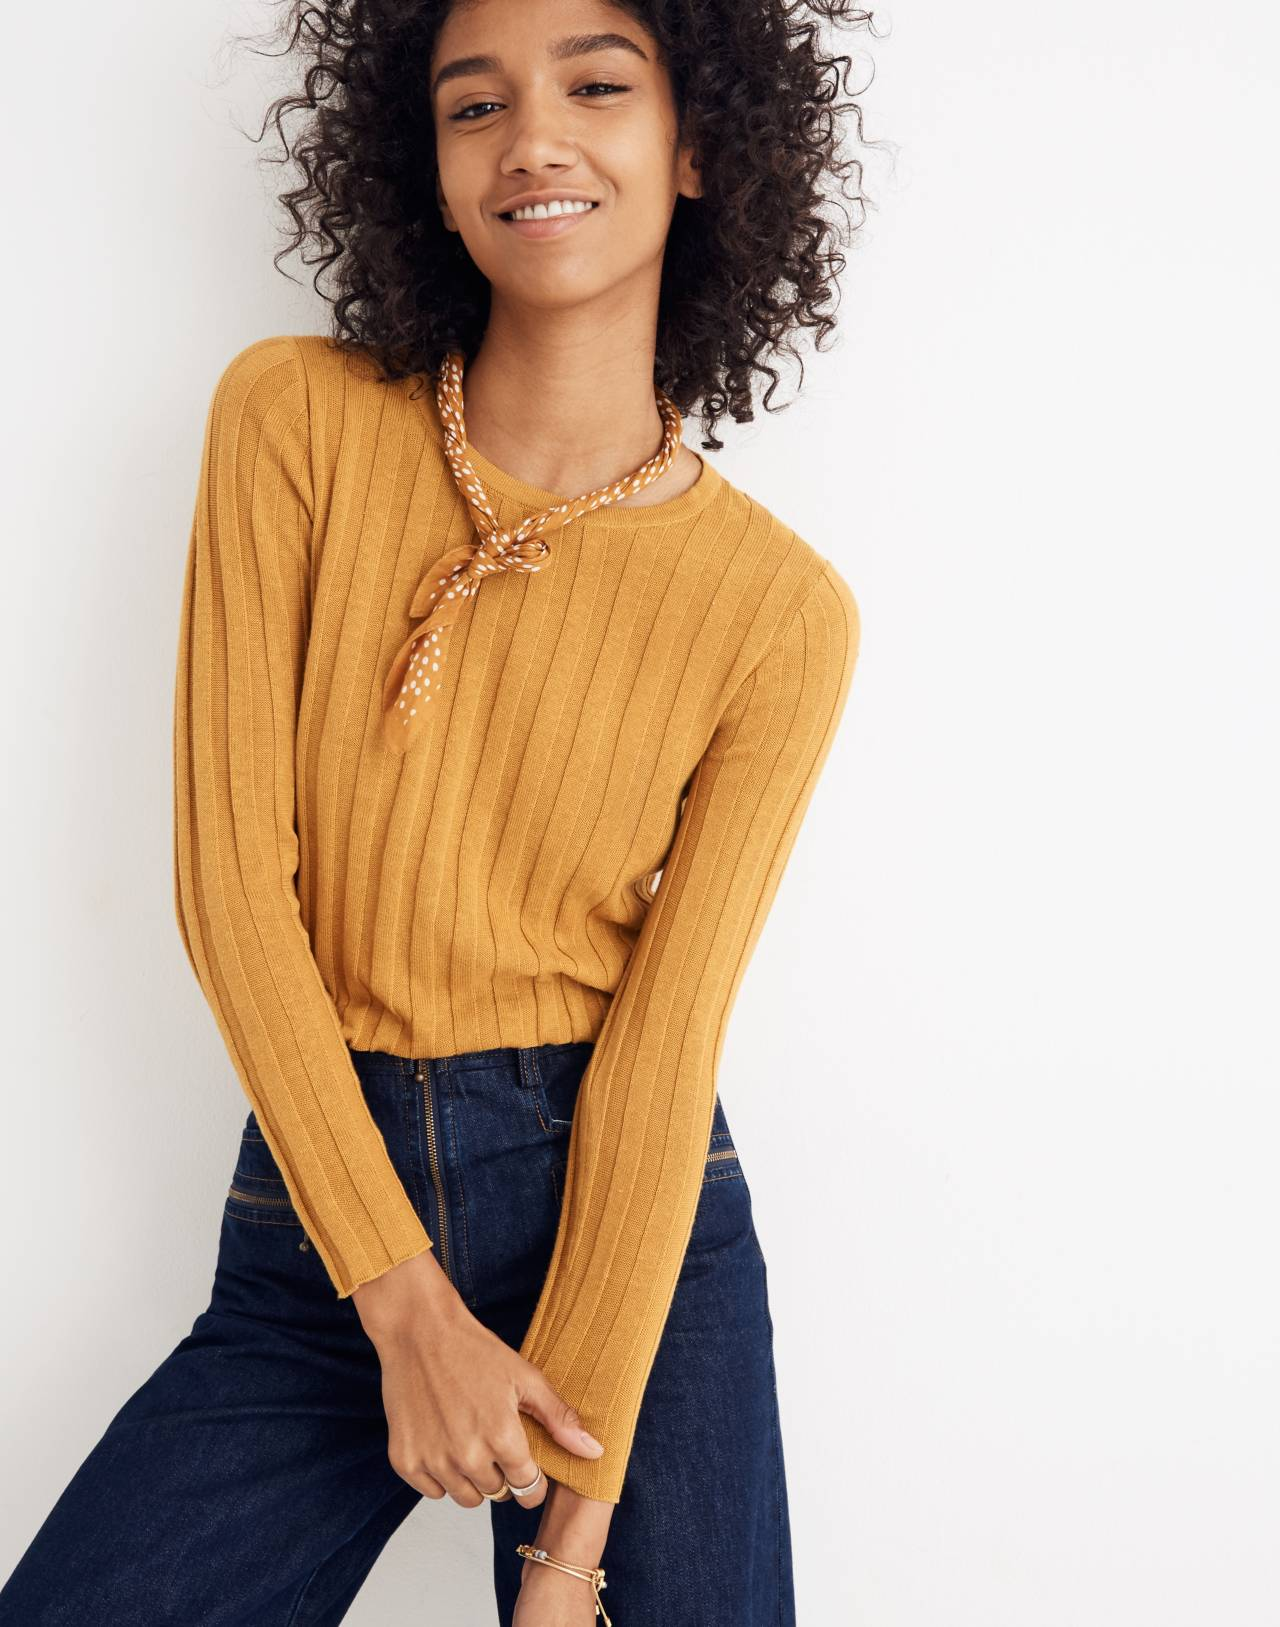 Clarkwell Pullover Sweater in naples yellow image 1